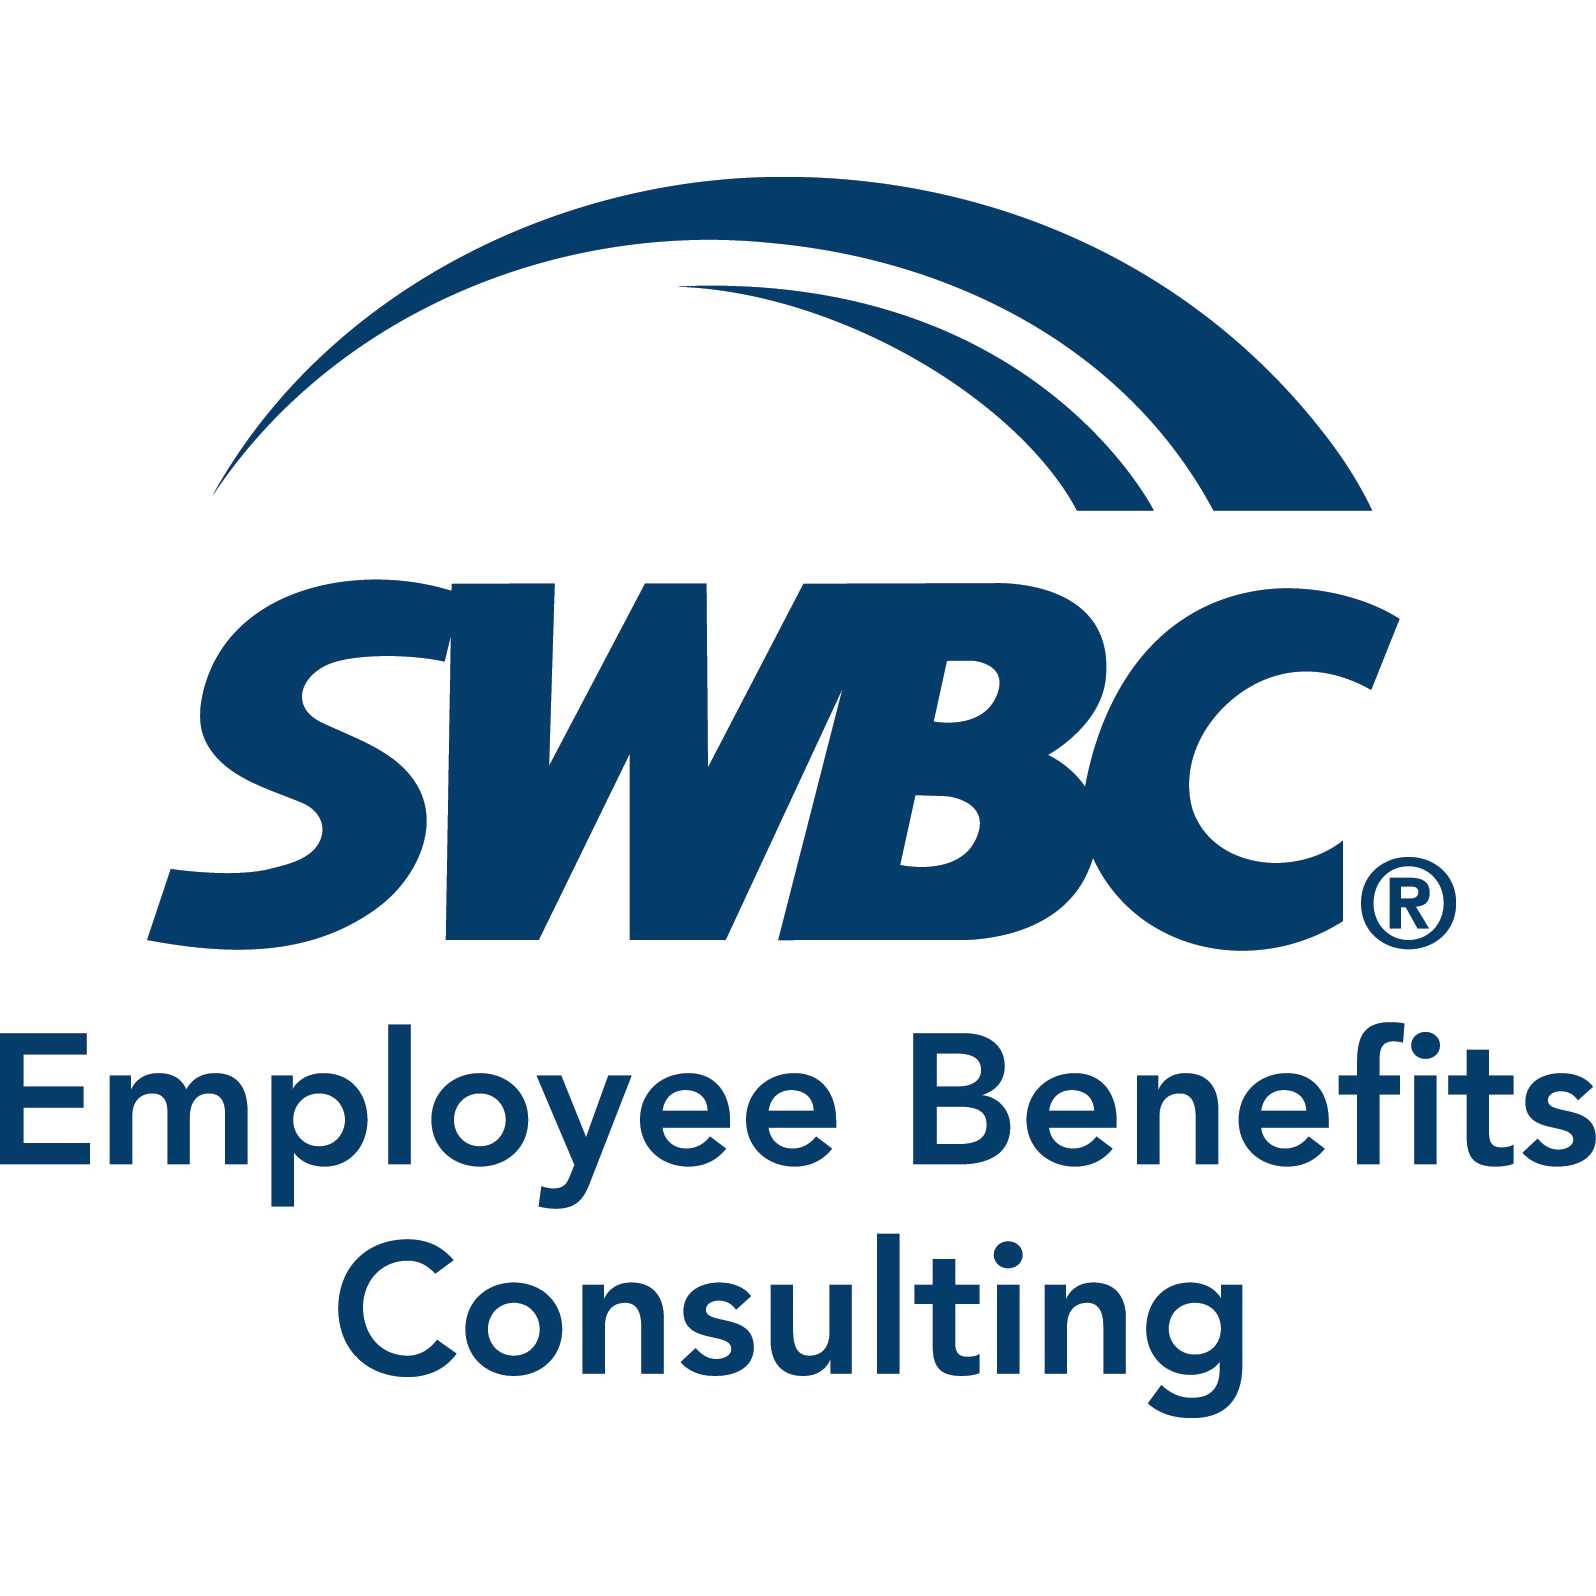 SWBC Employee Benefits